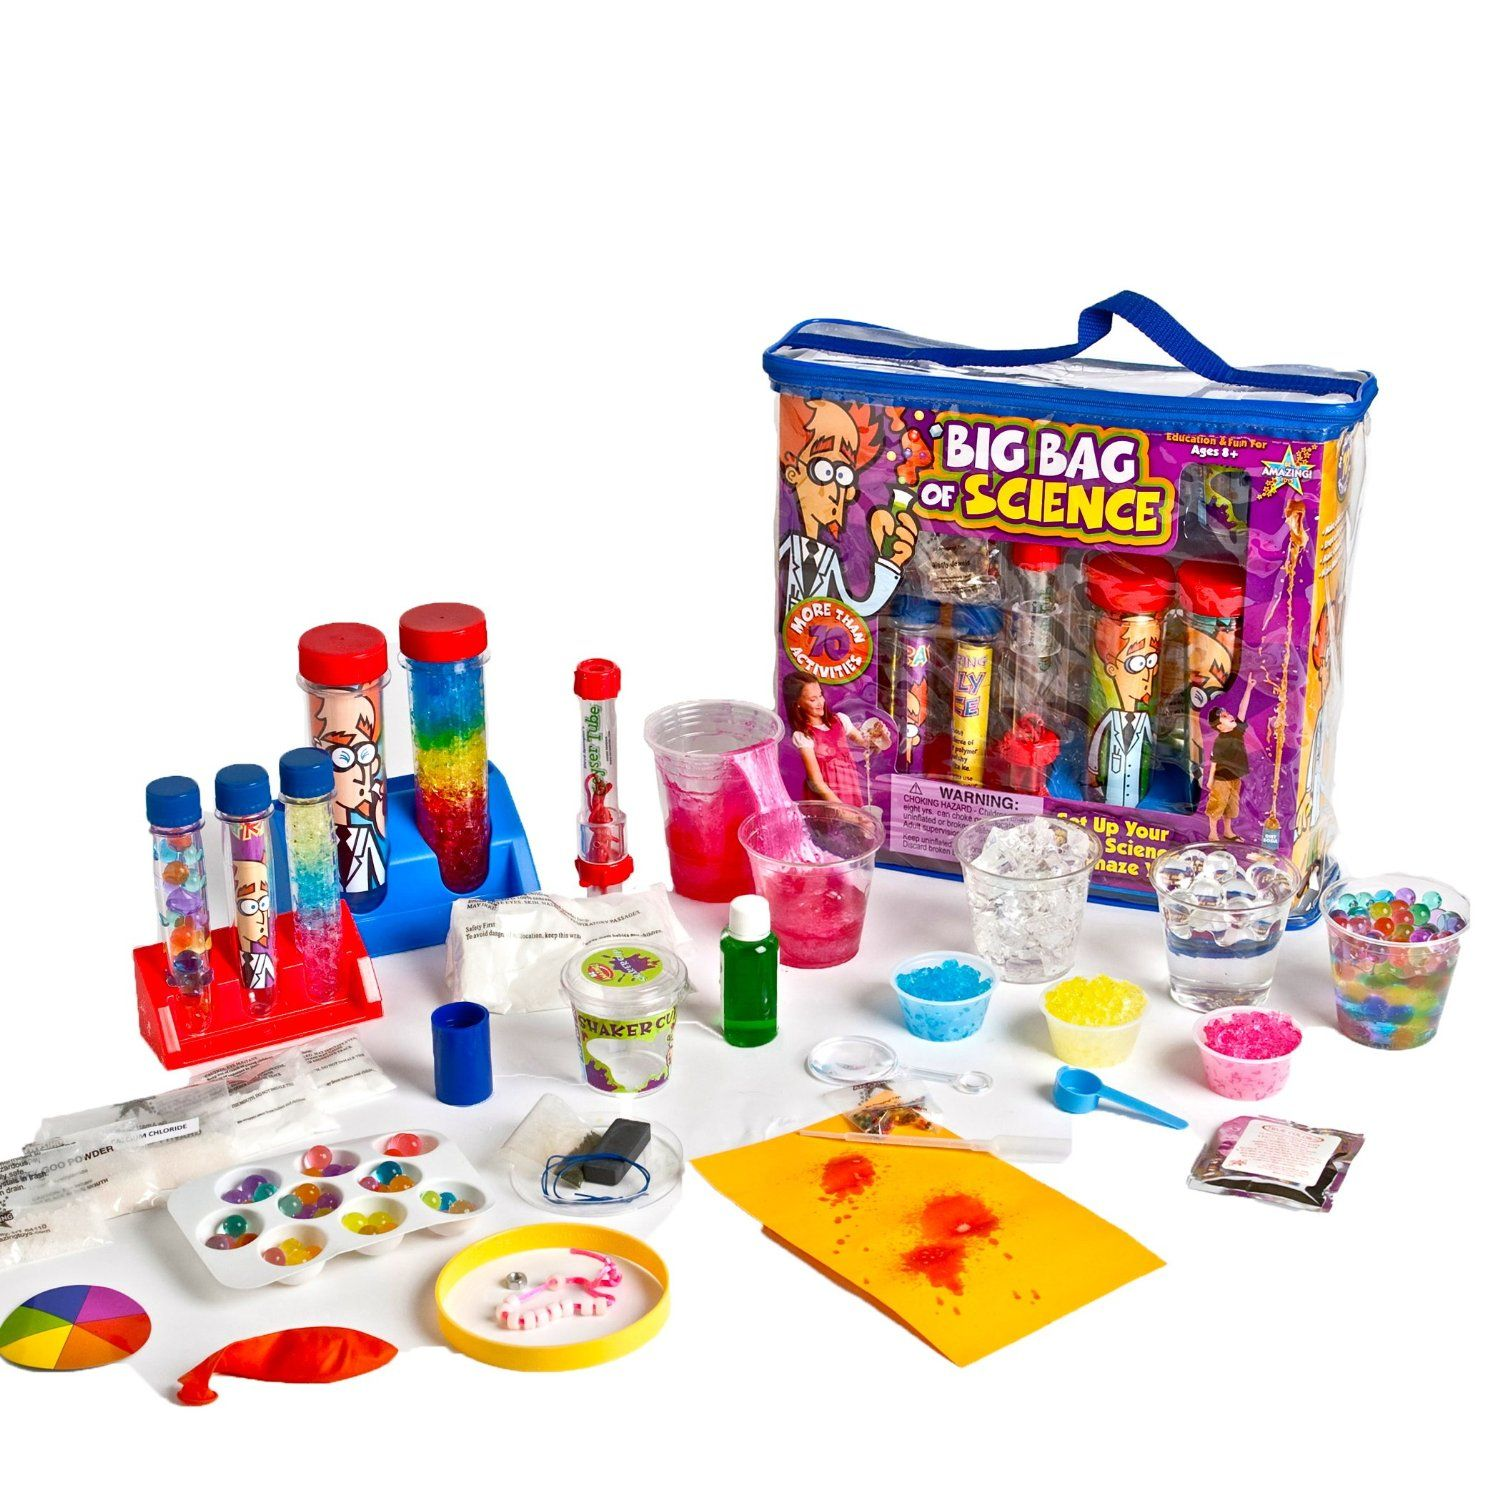 Permalink to Unique Science Kits for 6 Year Olds Pics